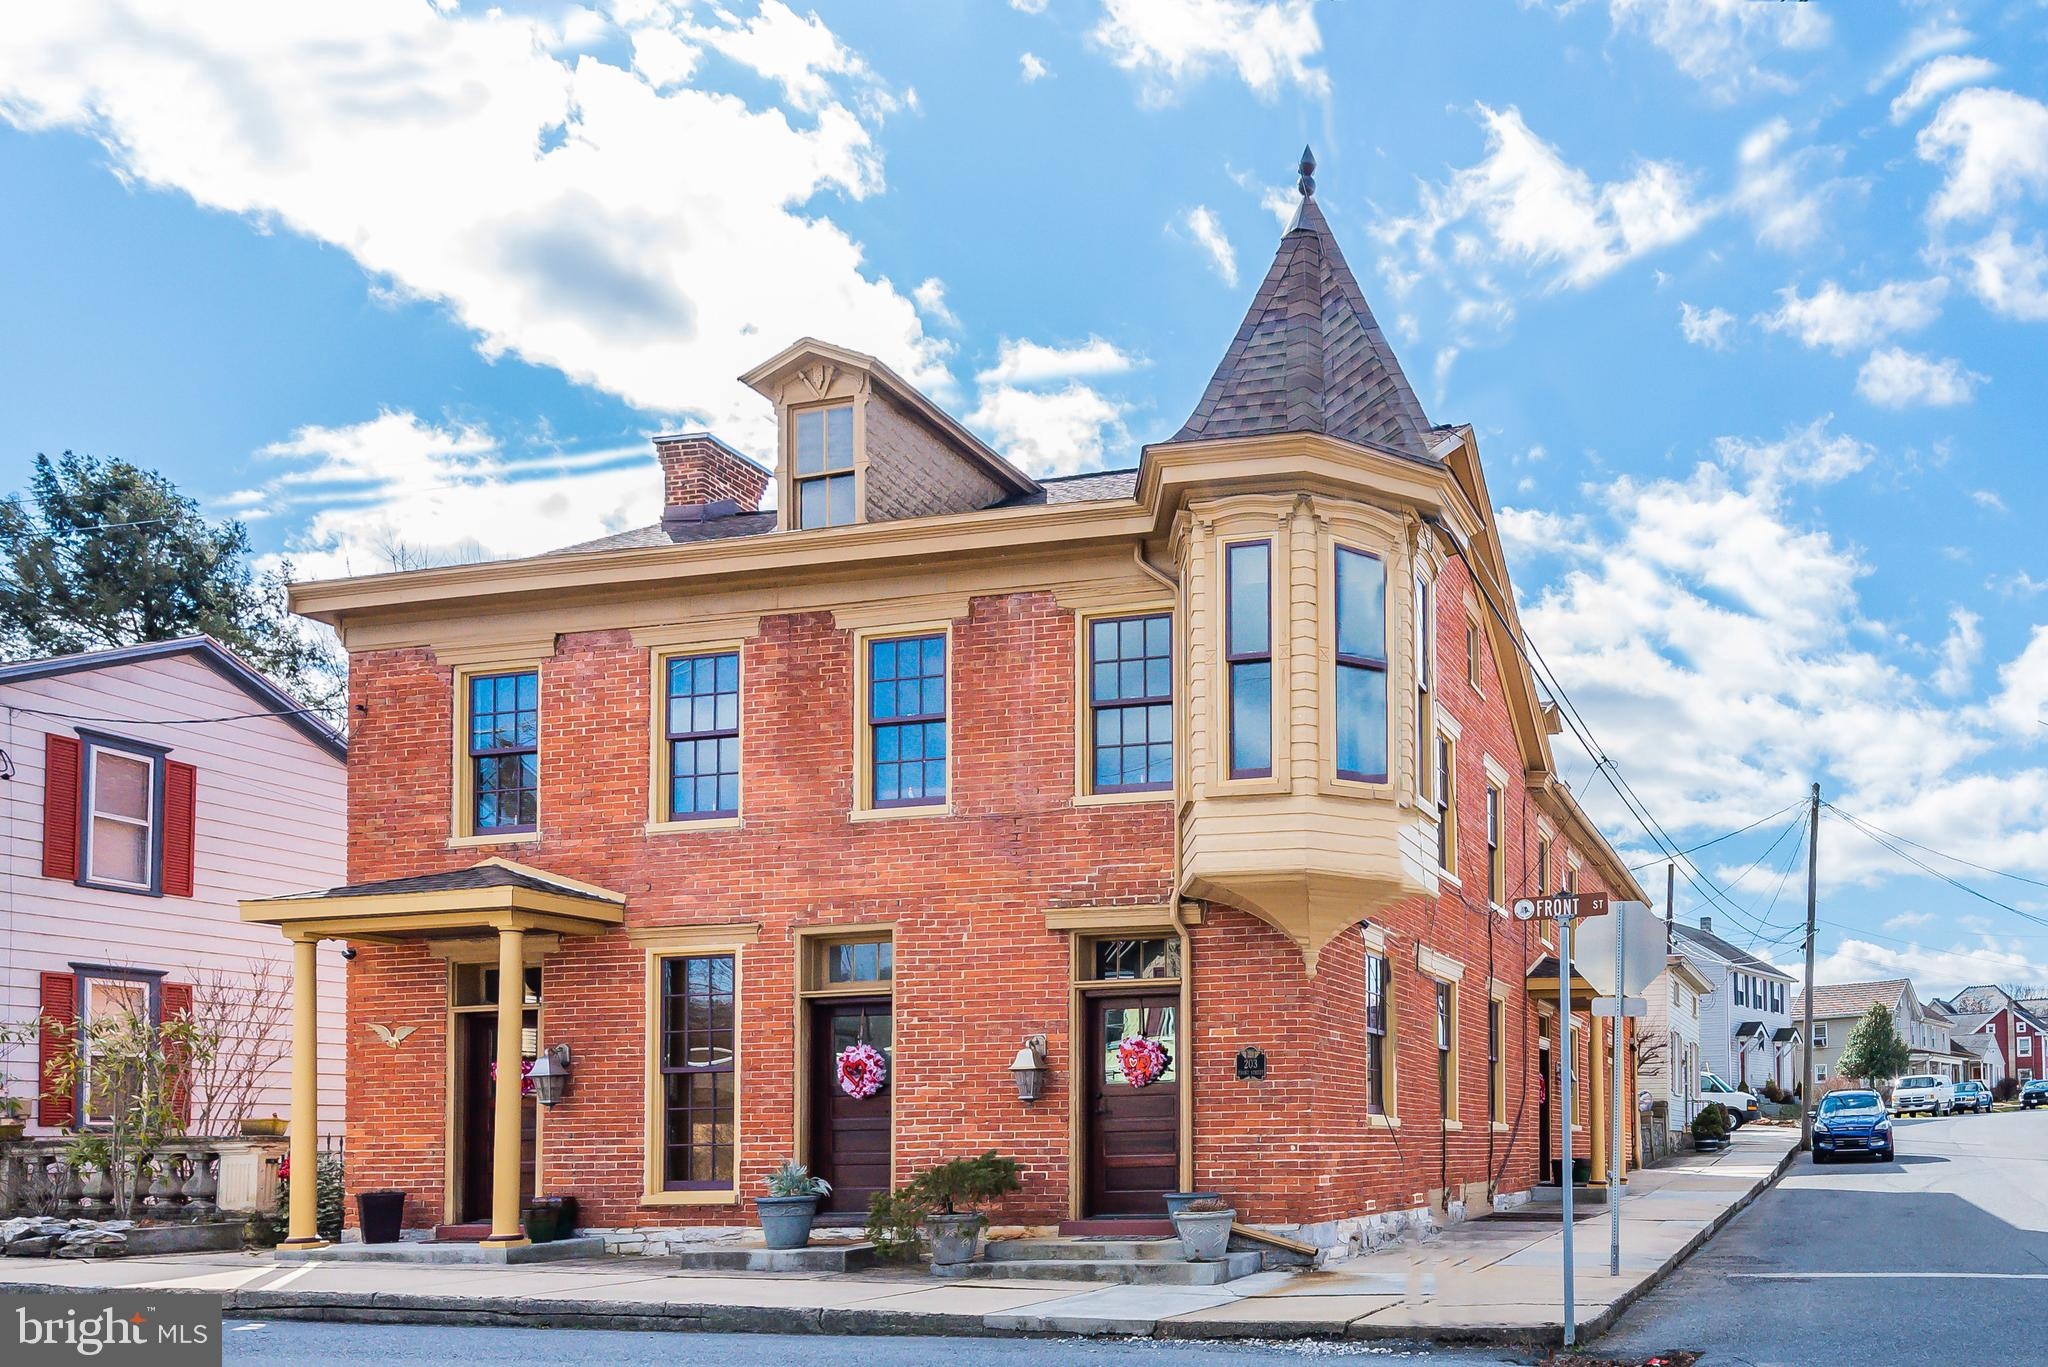 203 FRONT STREET, BOILING SPRINGS, PA 17007